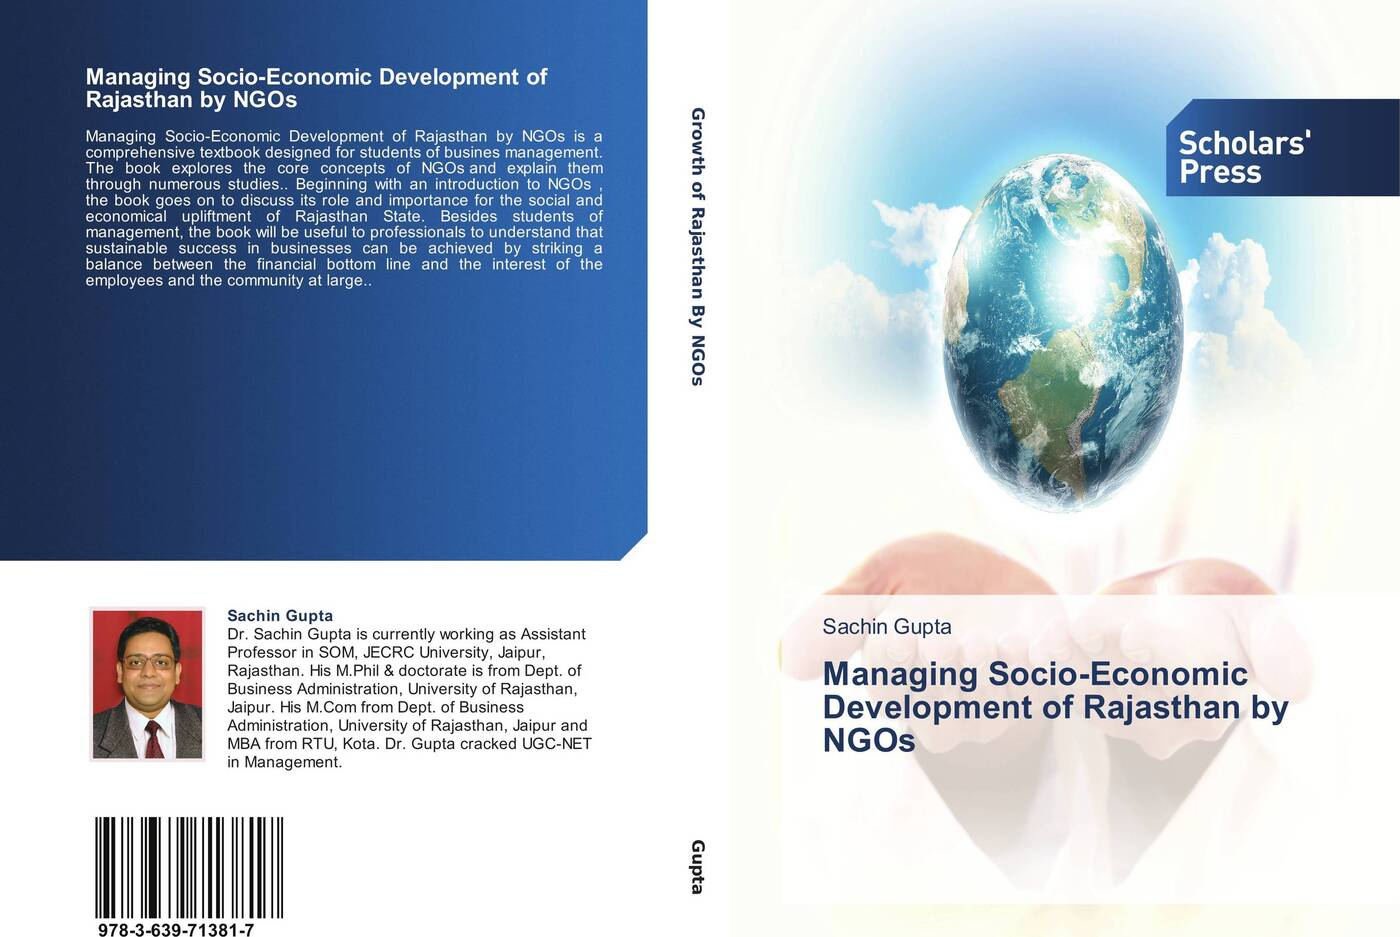 Managing Socio-Economic Development of Rajasthan by NGOs